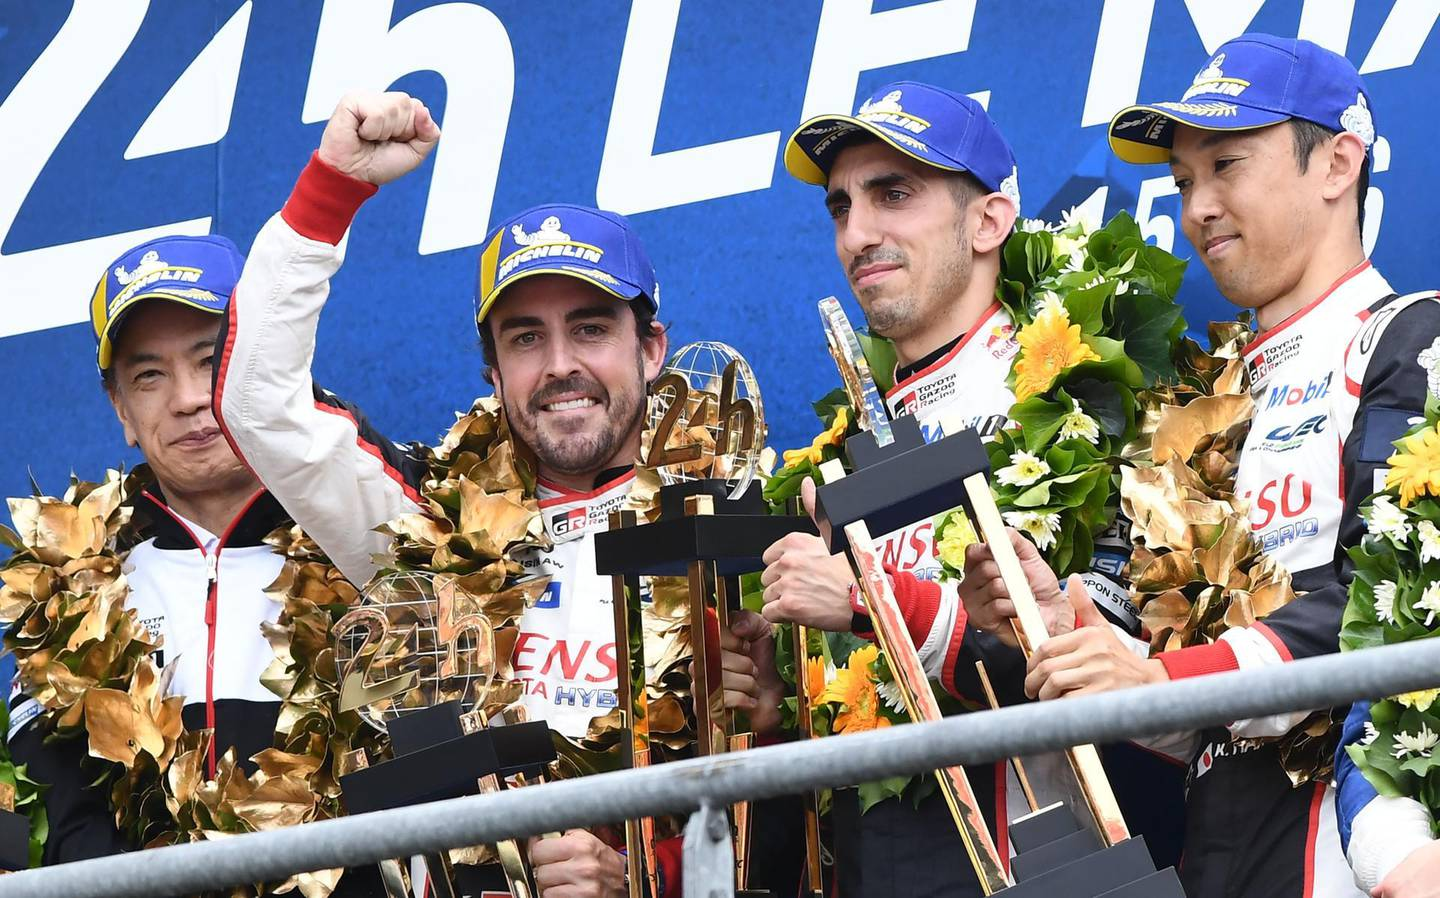 TOPSHOT - Toyota TS050 Hybrid LMP1 of Japanese's driver Kazuki Nakajima (R) Spain's driver Fernando Alonso (2L) and Switzerland's driver Sebastien Buemi (2R) celebrates on podium after winning in the 87th edition of the 24 Hours Le Mans endurance race on June 16, 2019, at Le Mans northwestern France.   / AFP / Fred TANNEAU